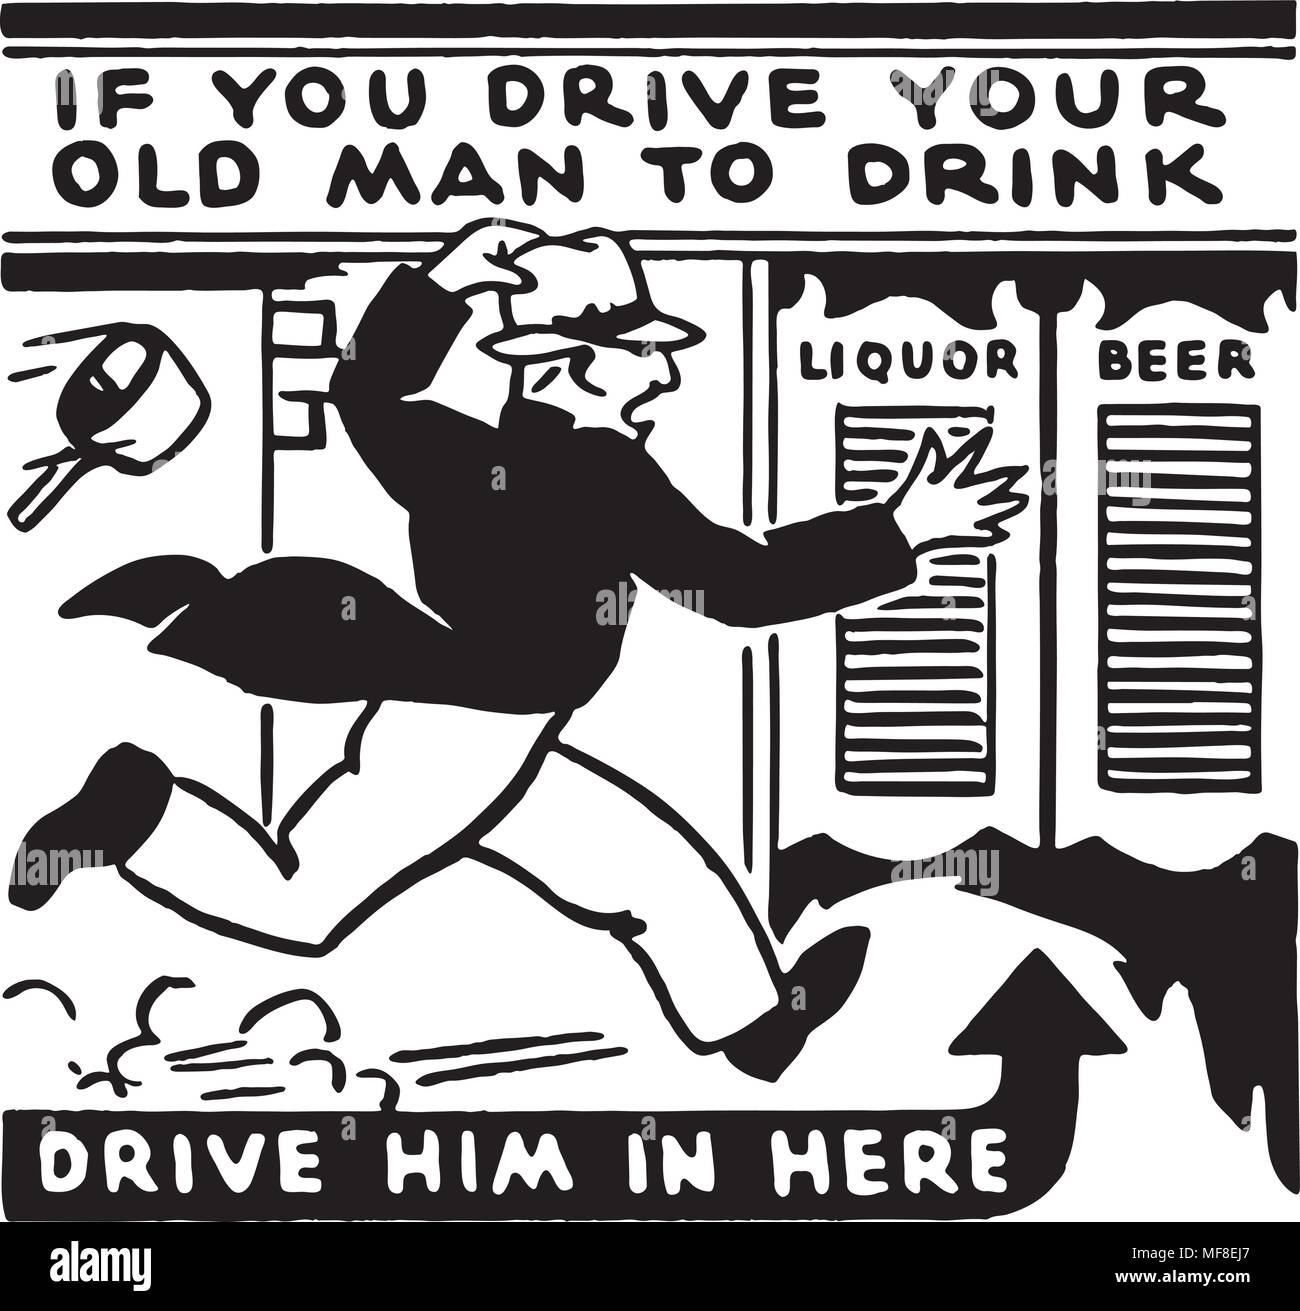 If You Drive Your Old Man - Retro Ad Art Banner - Stock Image